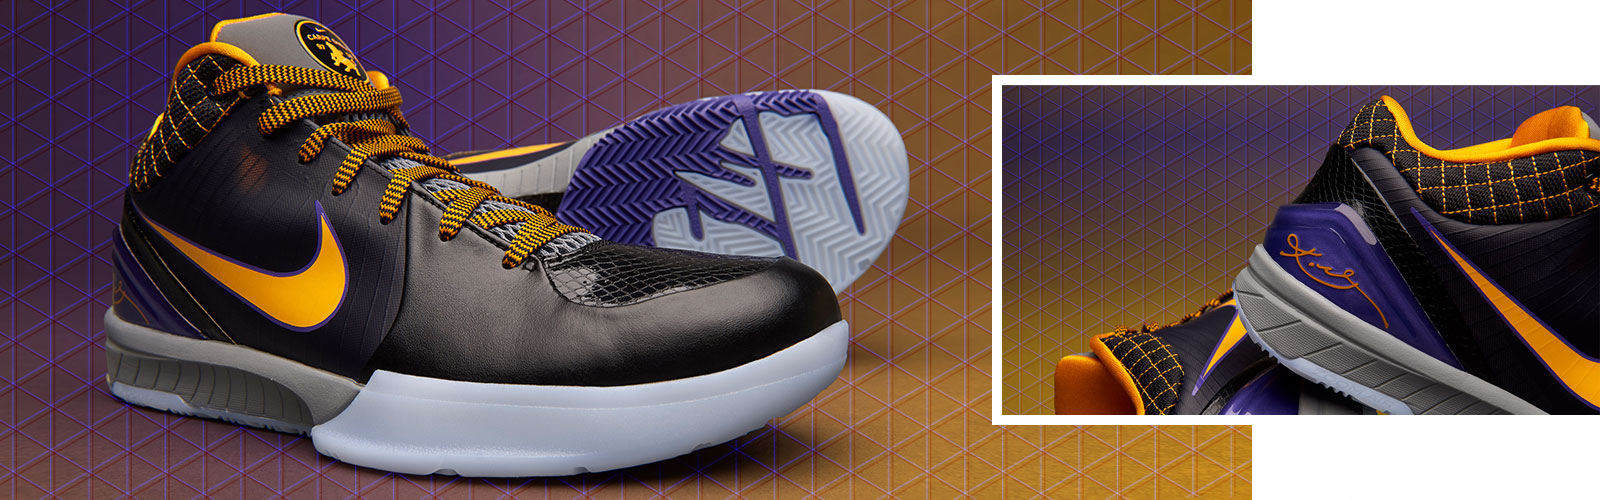 EB-060119-KobeProtro-1UP copy.jpg